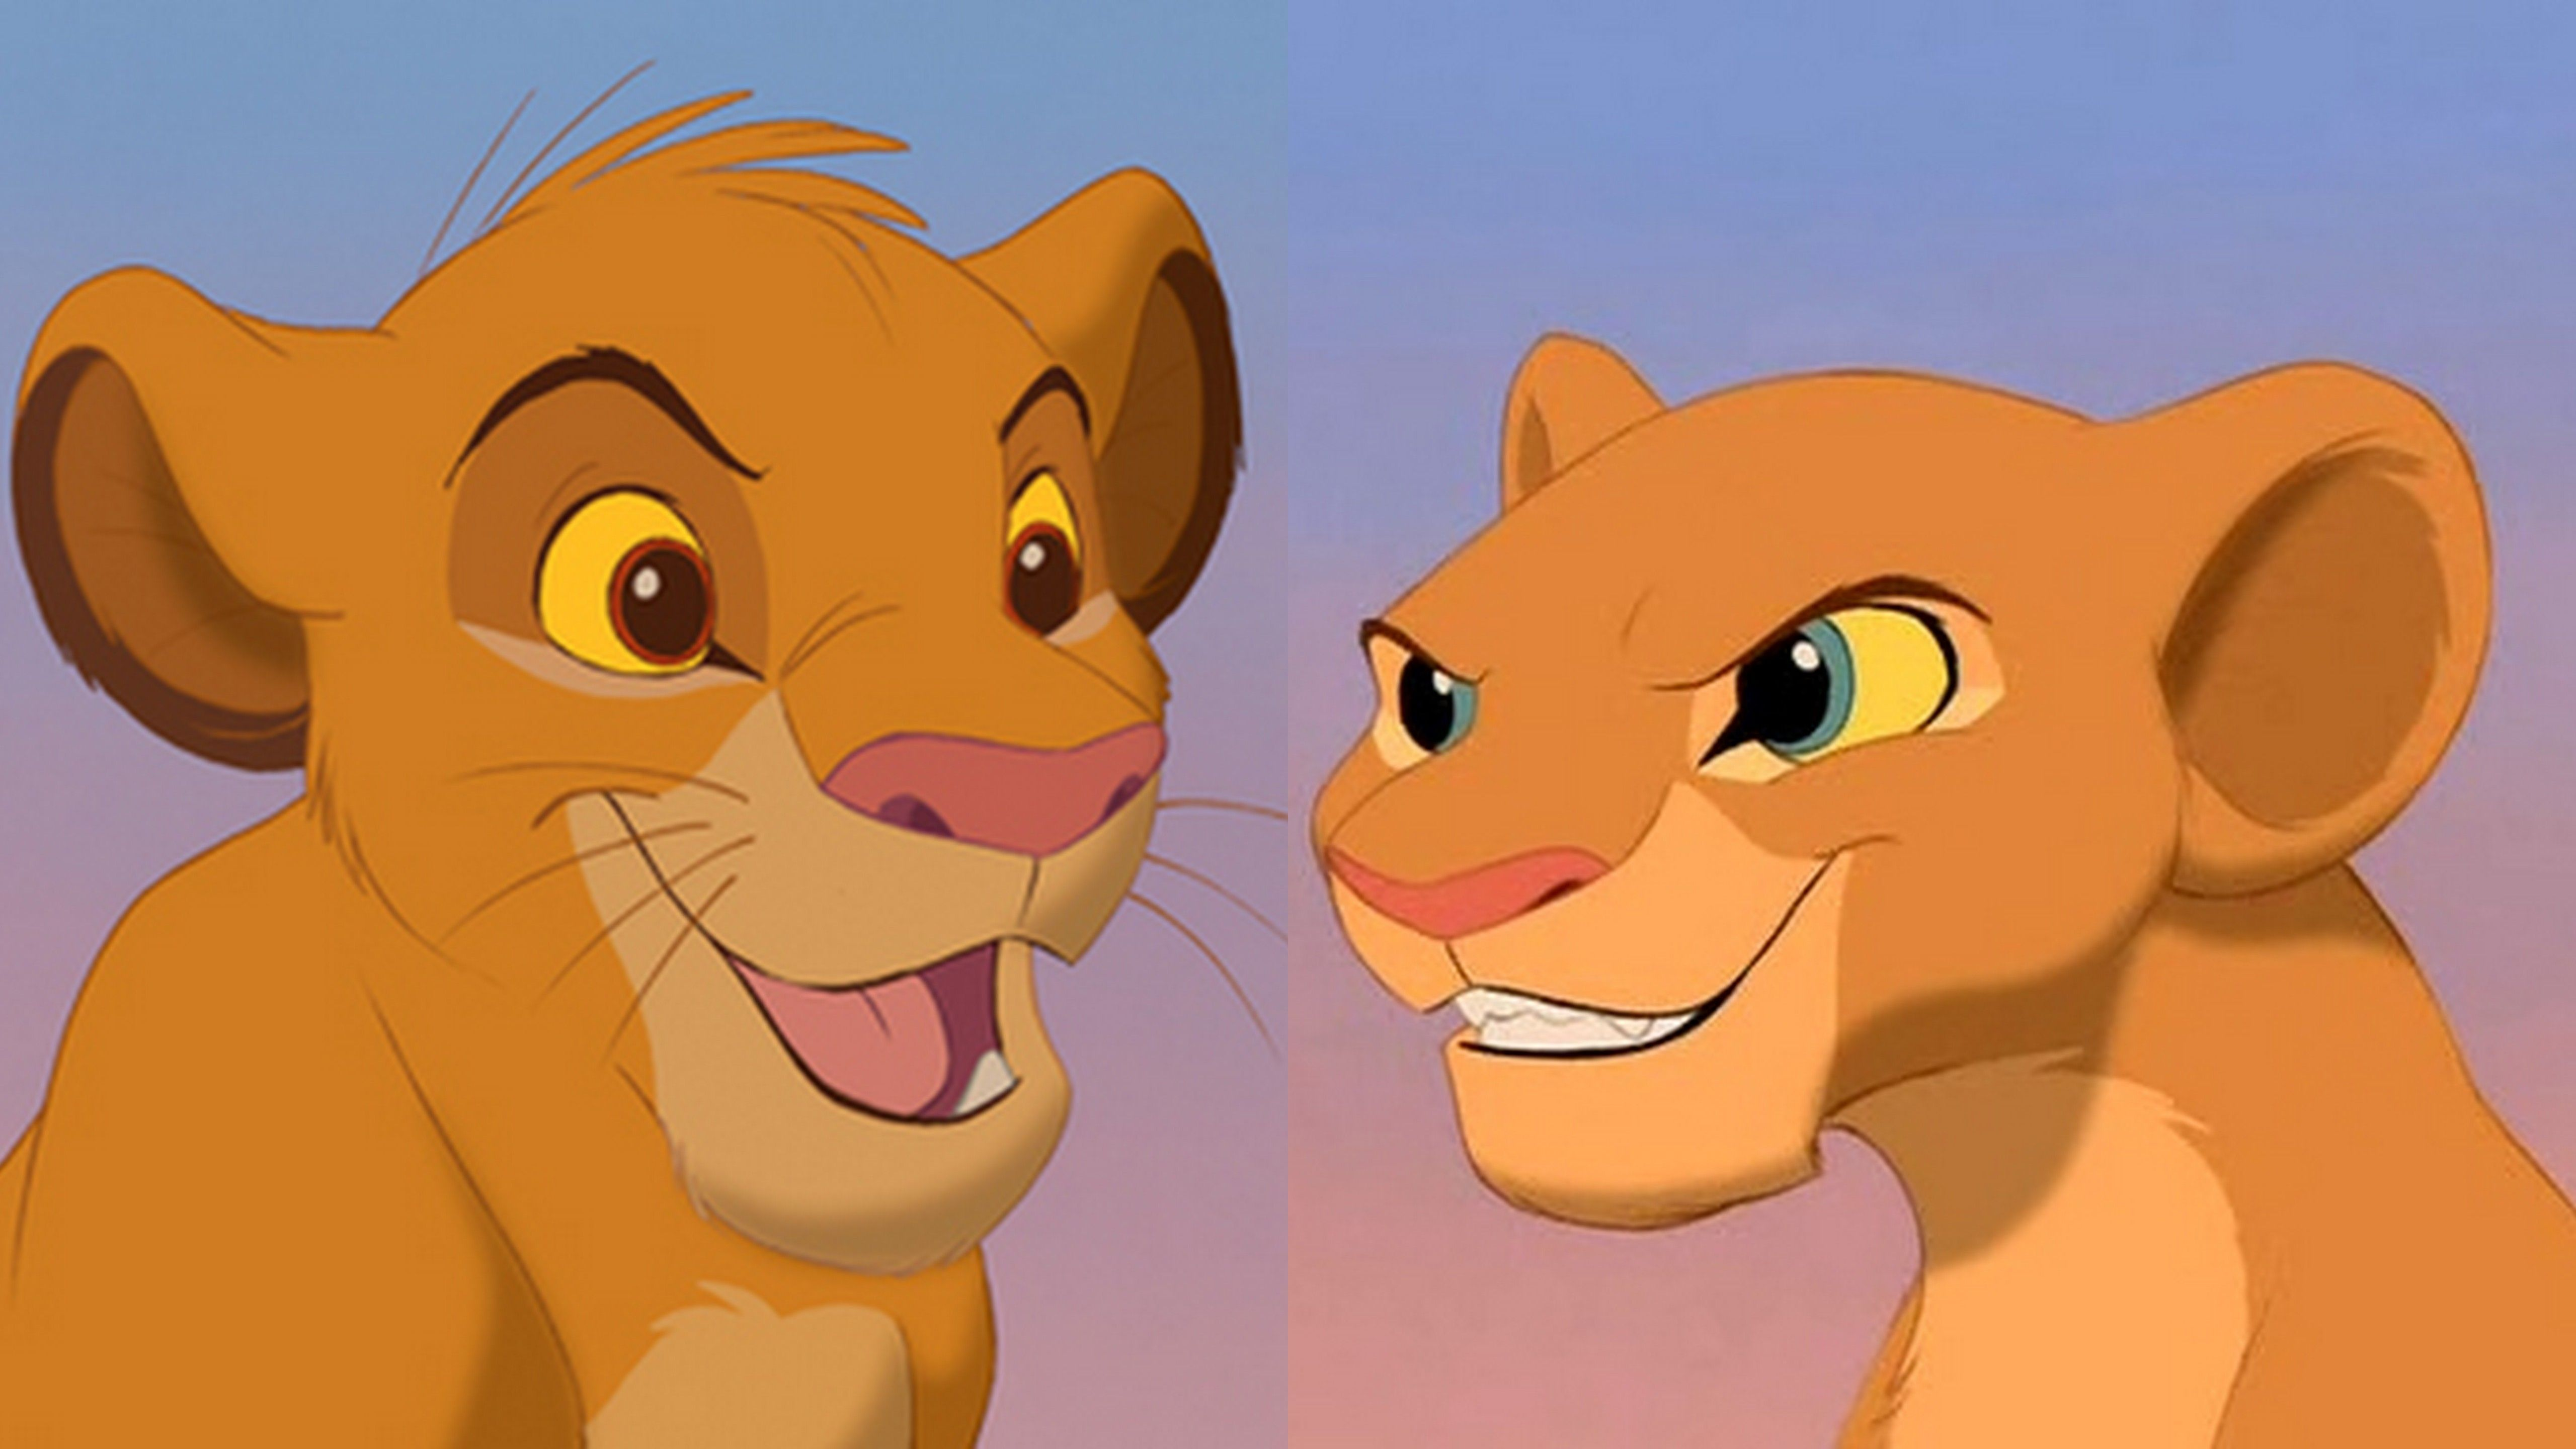 Pin By Night Fury Love On The Lion King Lion Guard In 2020 Lion King Fan Art Simba And Nala Lion King Timon